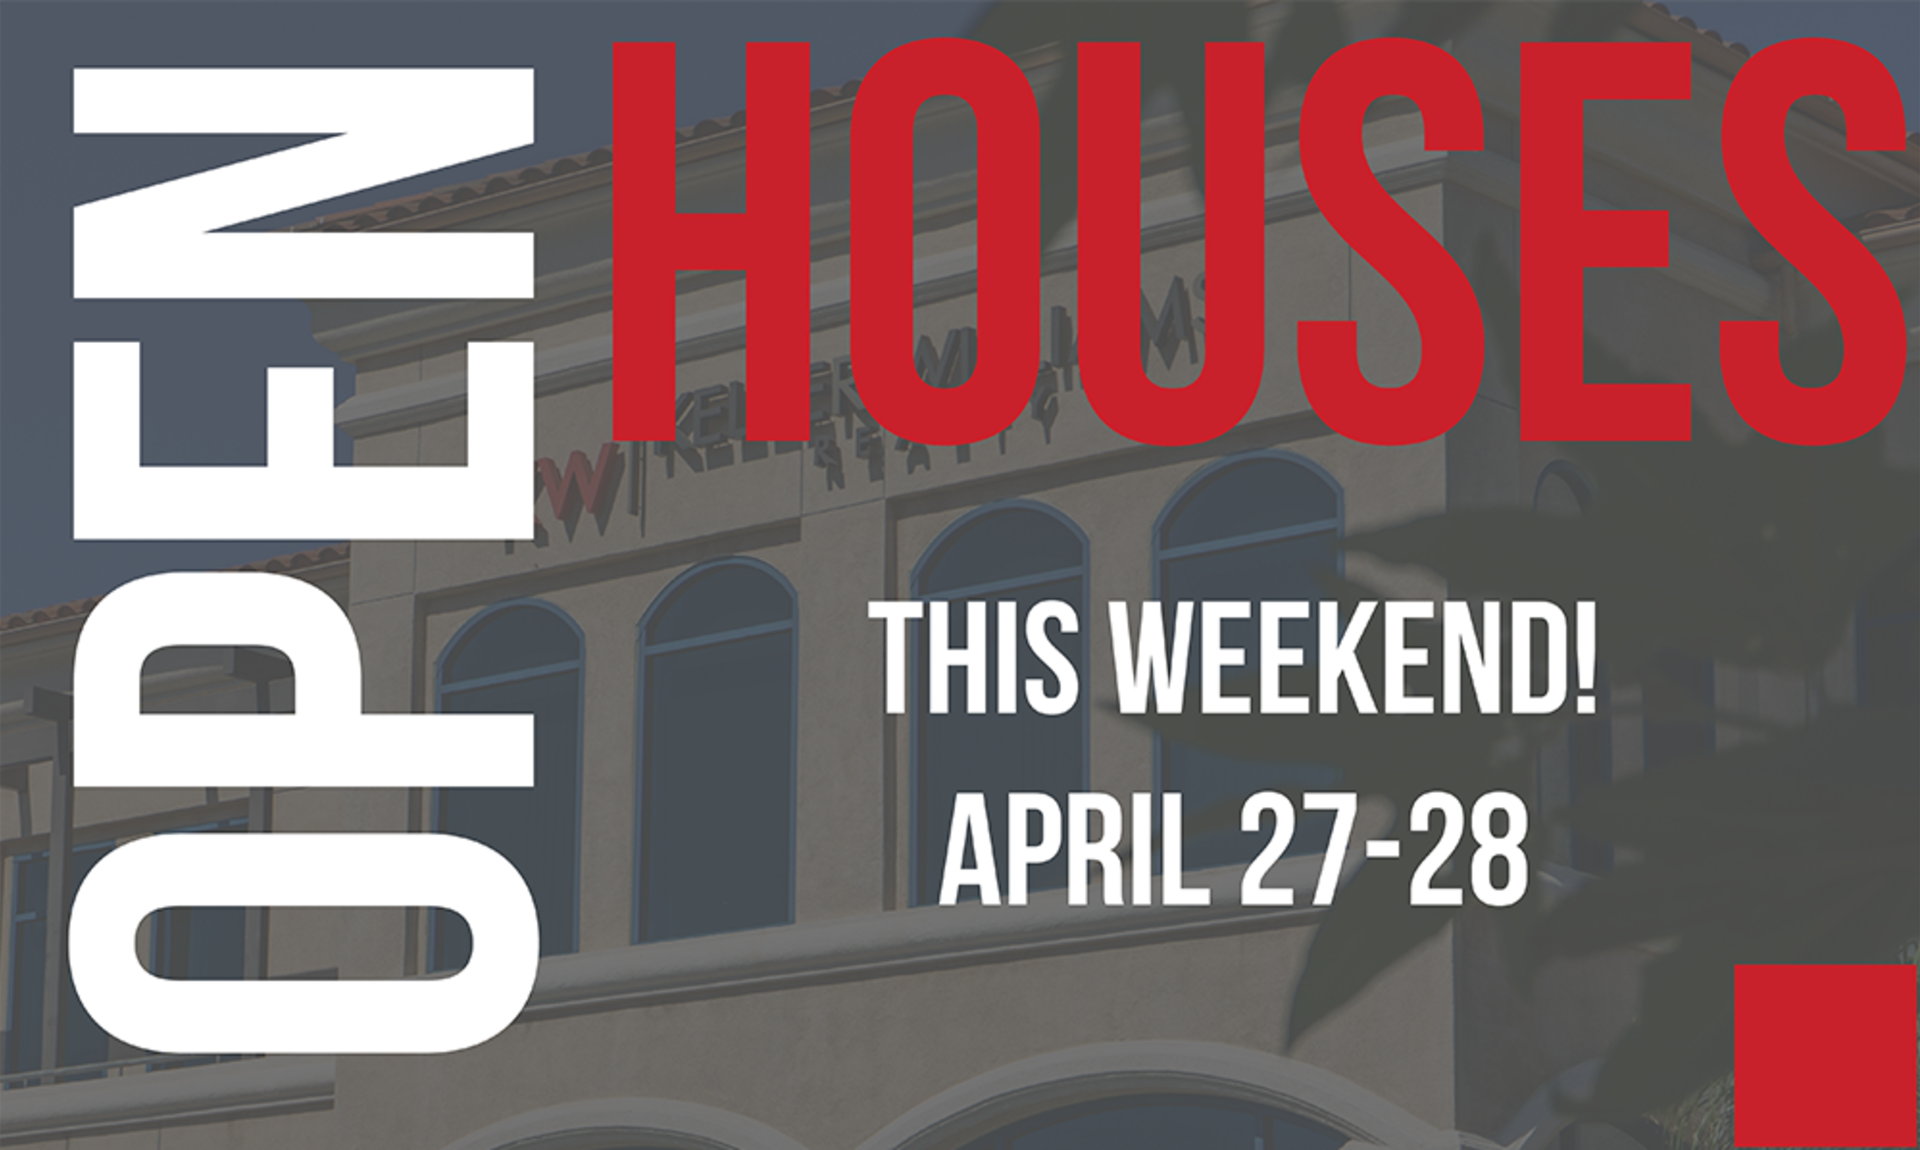 Open Houses This Weekend! April 27-28